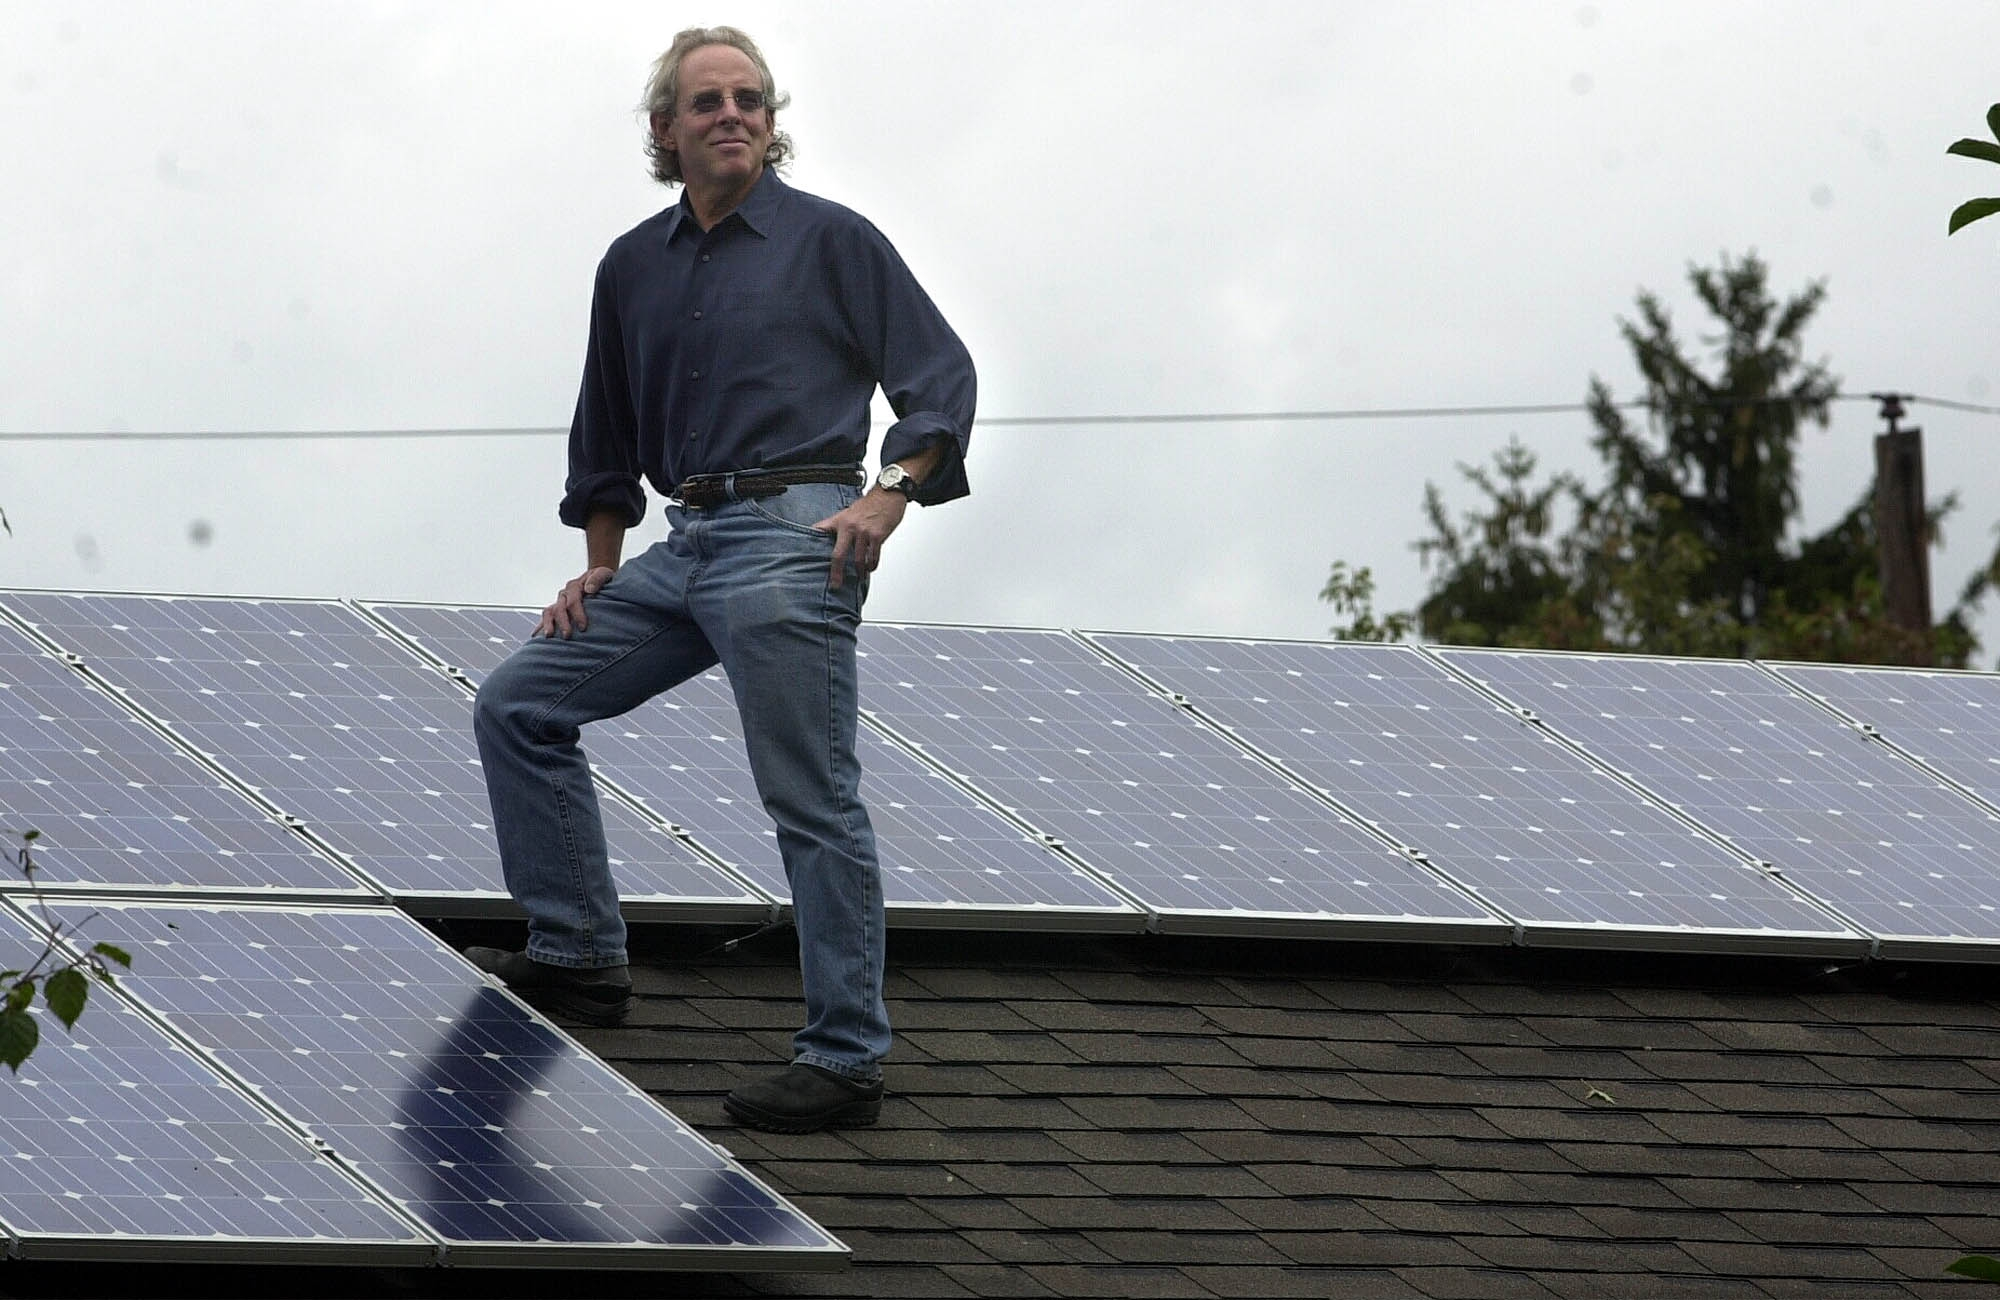 Richard Bergman on the roof of his Amherst home amid solar panels. A new study shows WNY is a good fit for solar development.